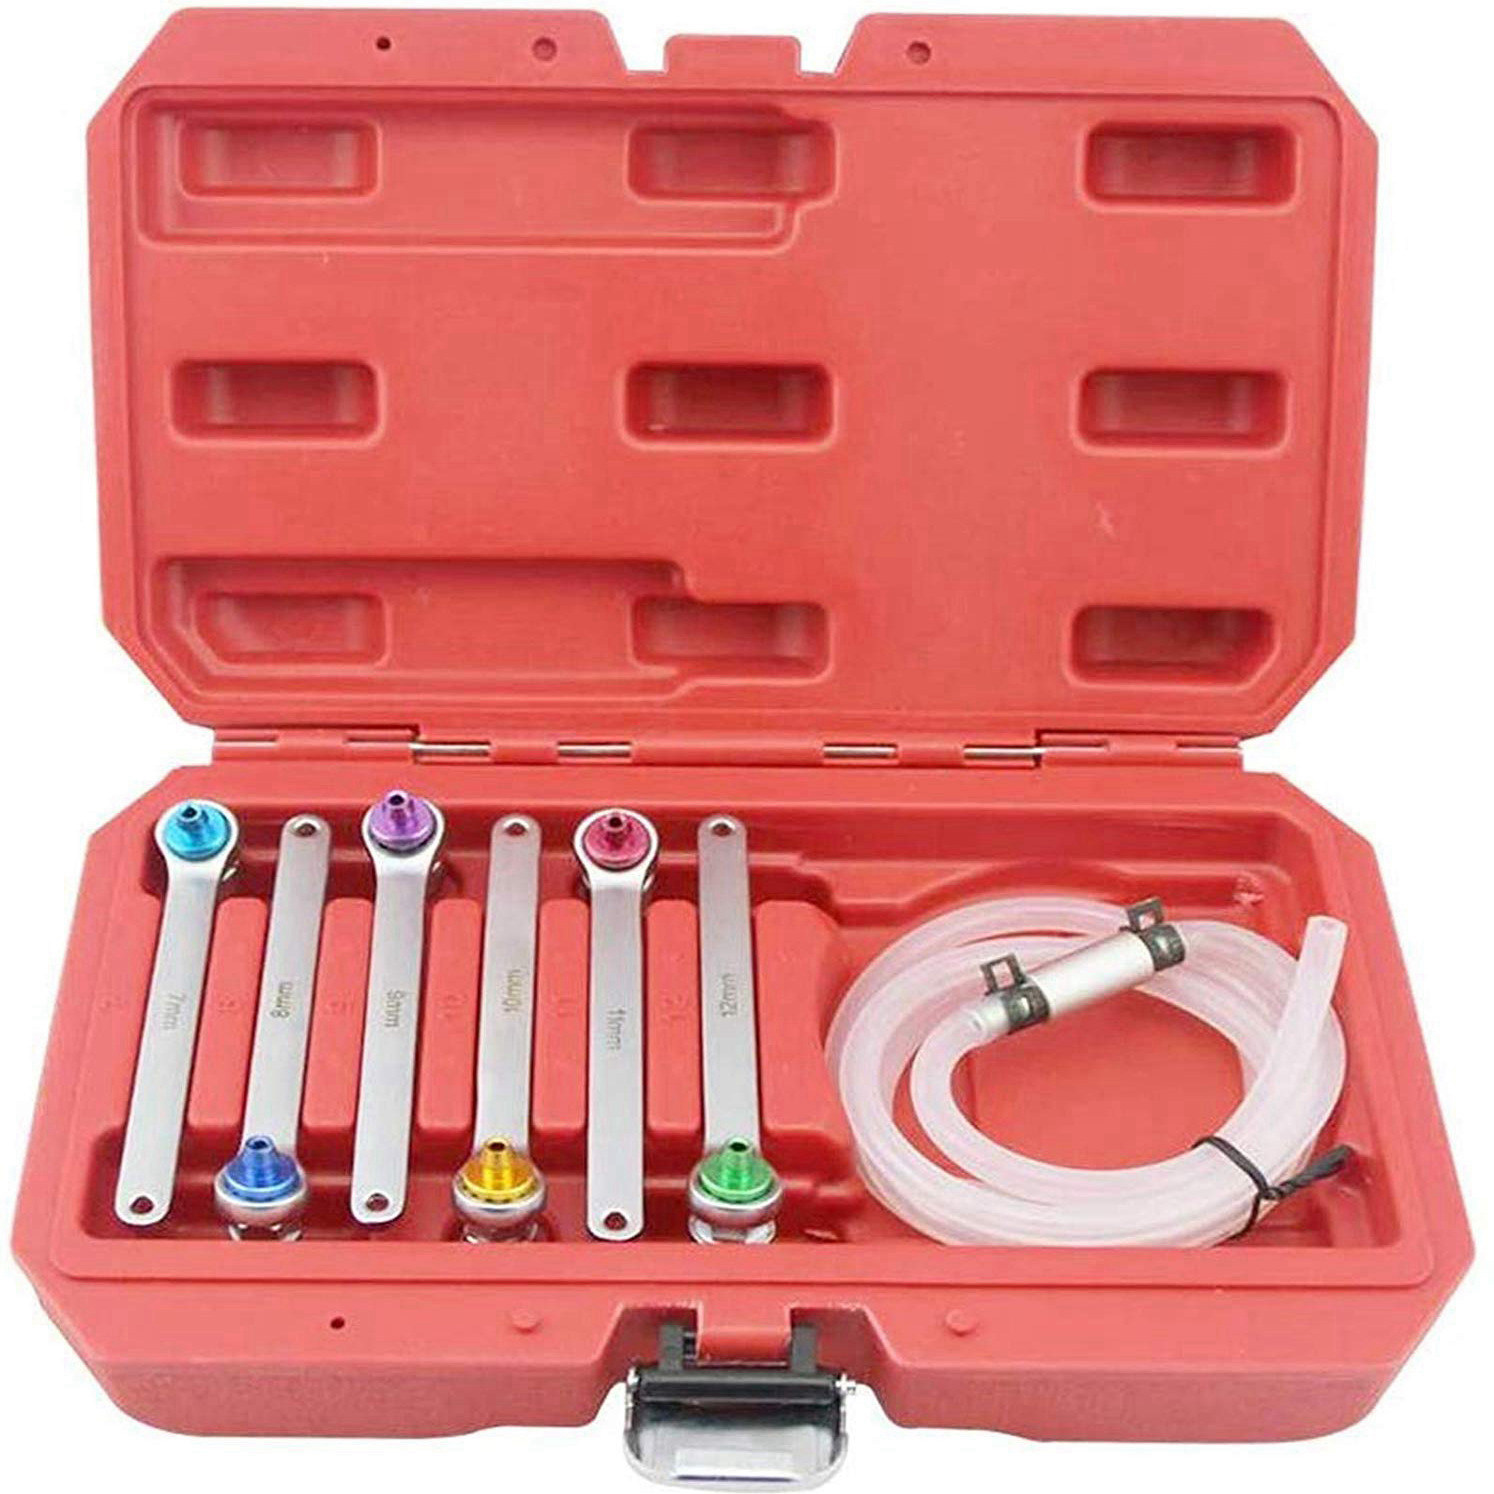 Brake Bleeder Wrench Kit 6 Pieces 7 8 9 10 11 12 mm Bleeder Wrenches Brake Bleeding & Hydraulic Clutch Systems Wrench Set and Dr image